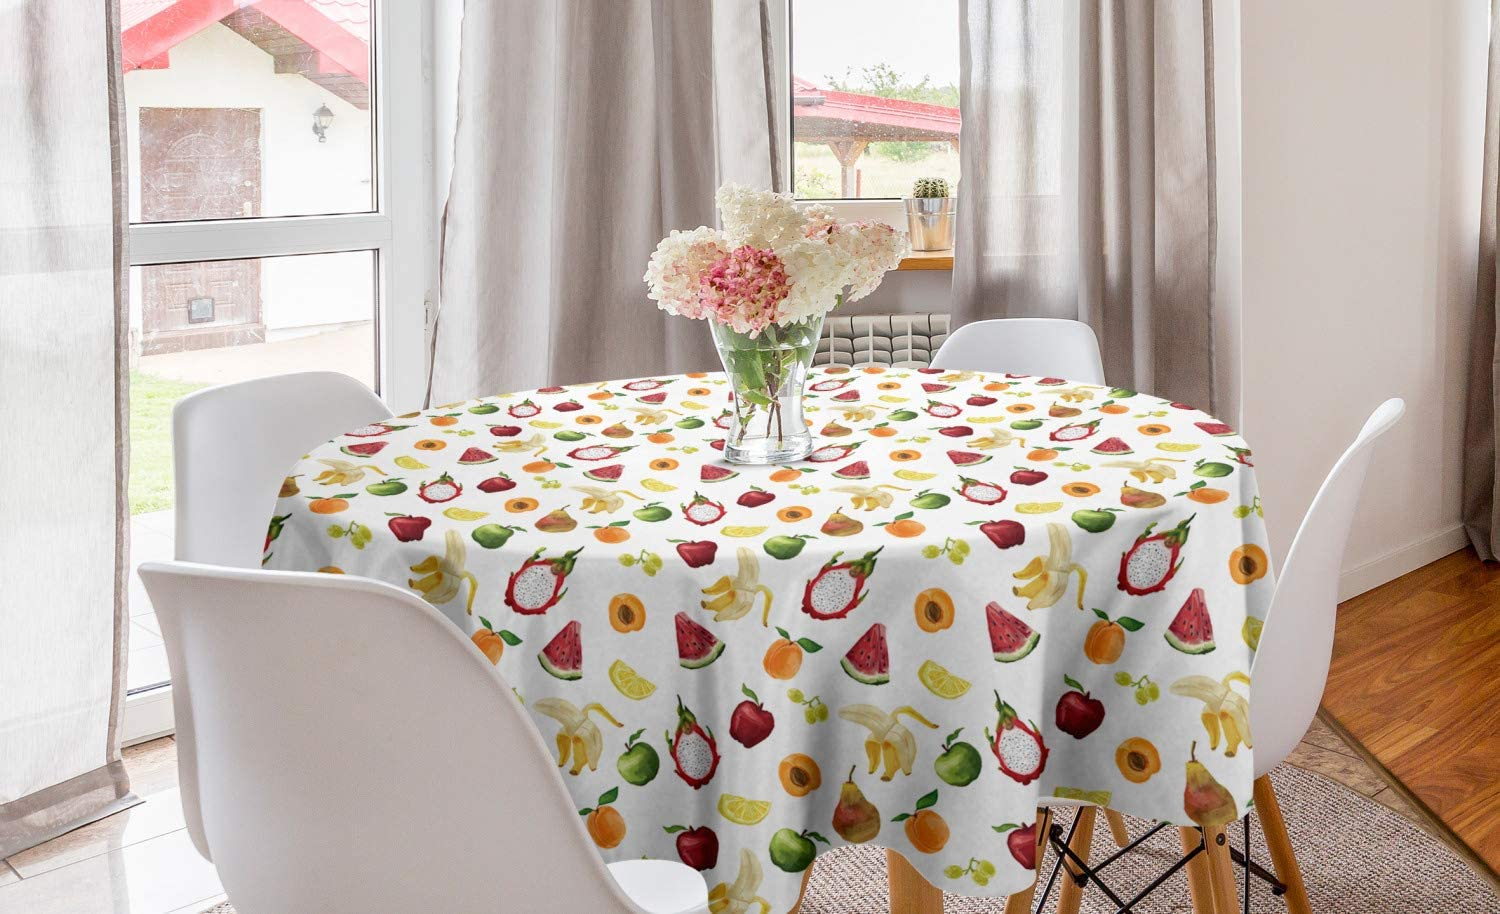 Lunarable Watercolor Round Tablecloth, Abstract Fruit Paintbrush Style Watermelon Apple Banana Theme, Circle Table Cloth Cover for Dining Room Kitchen Decoration, 60